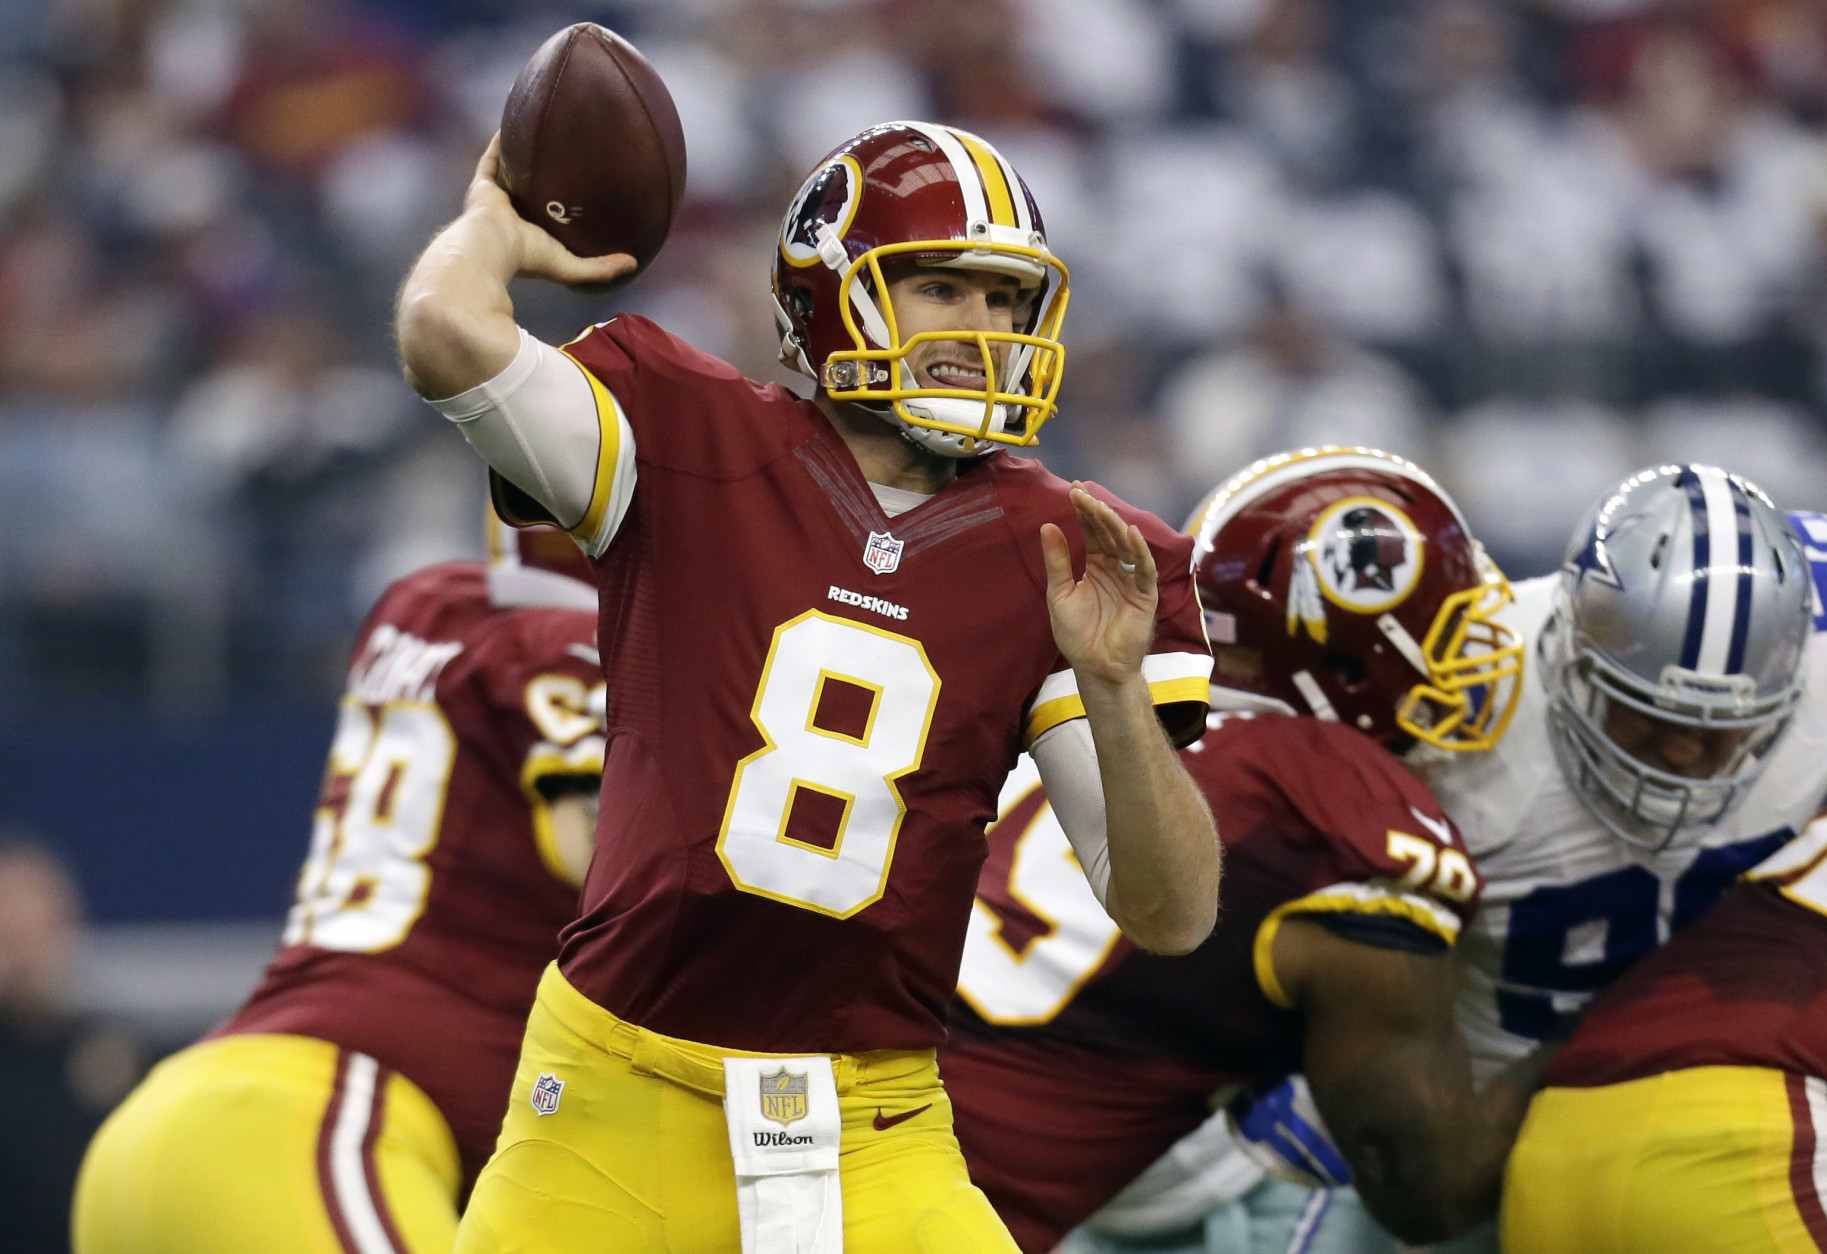 Washington Redskins quarterback Kirk Cousins (8) looks to pass under pressure in the first half of an NFL football game against the Dallas Cowboys on Sunday, Jan. 3, 2016, in Arlington , Texas. (AP Photo/Tim Sharp)